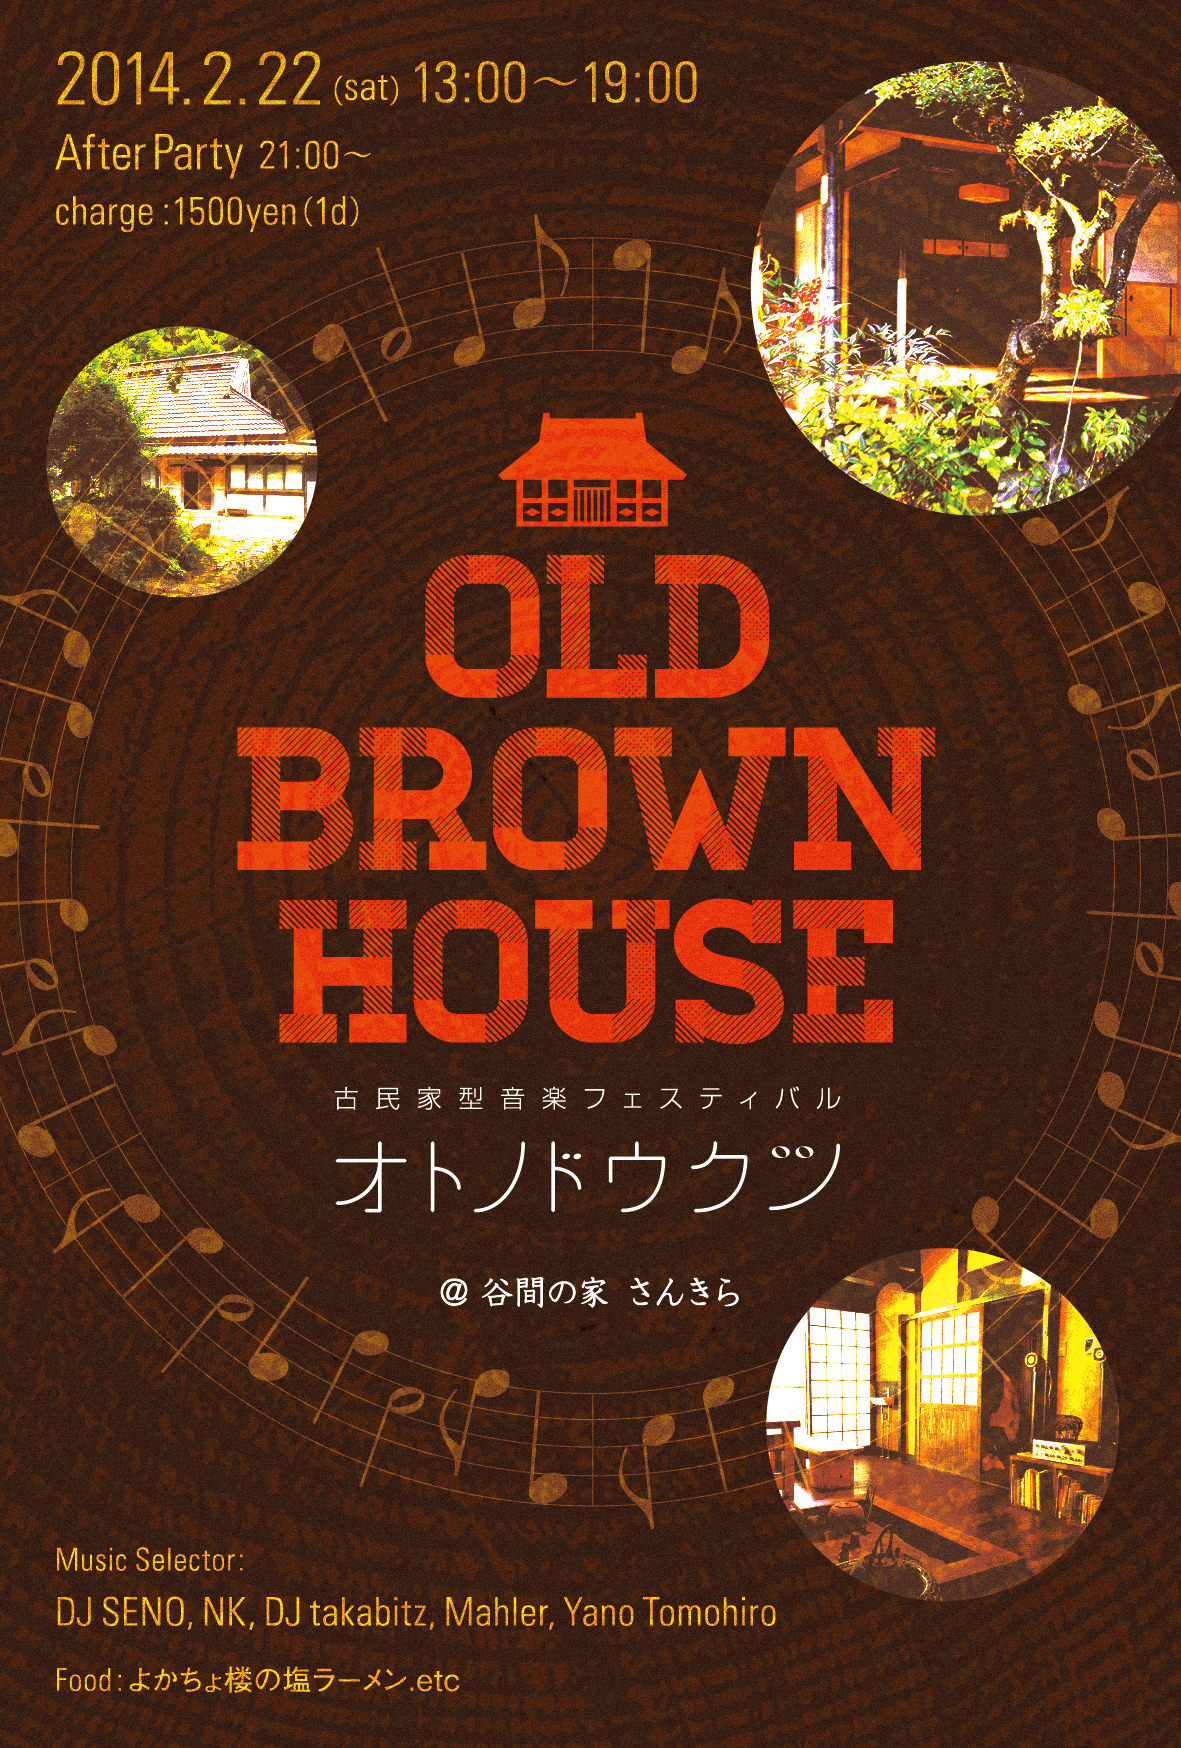 OLD BROWN HOUSE オトノドウクツ 140222フライヤー表面